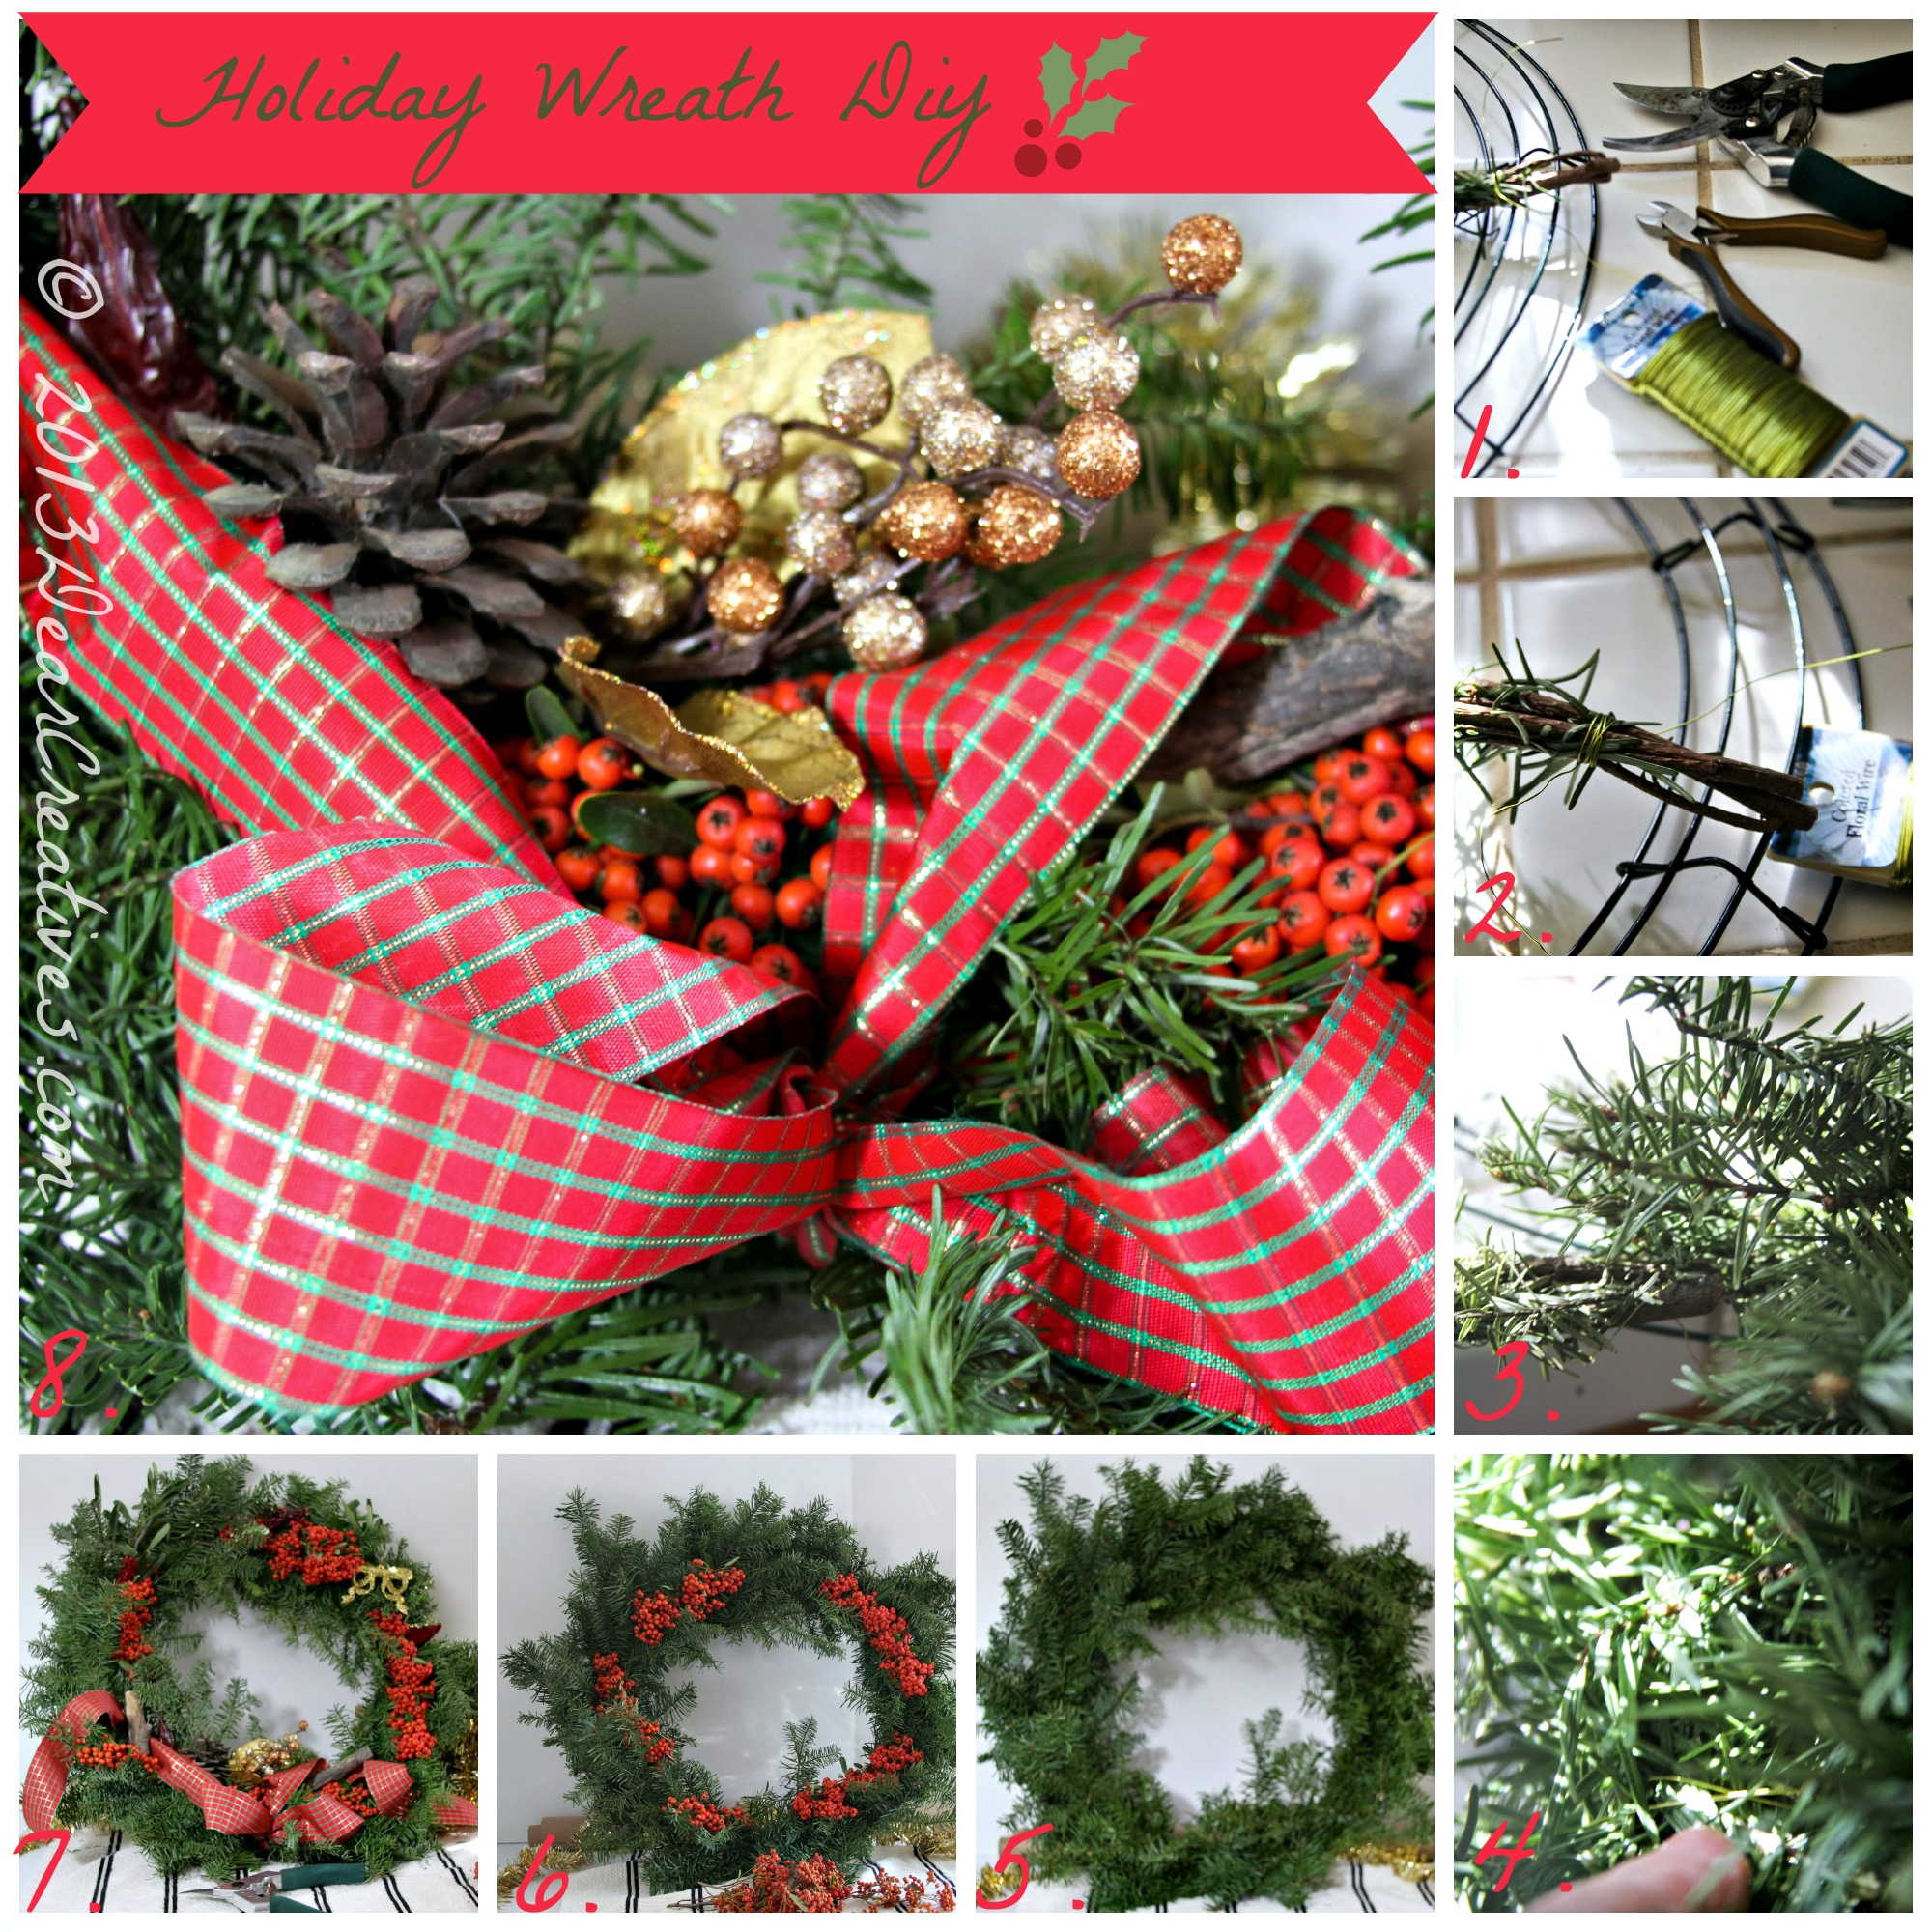 Step by Step How to Make a Wreath : Holiday Wreath #Diy